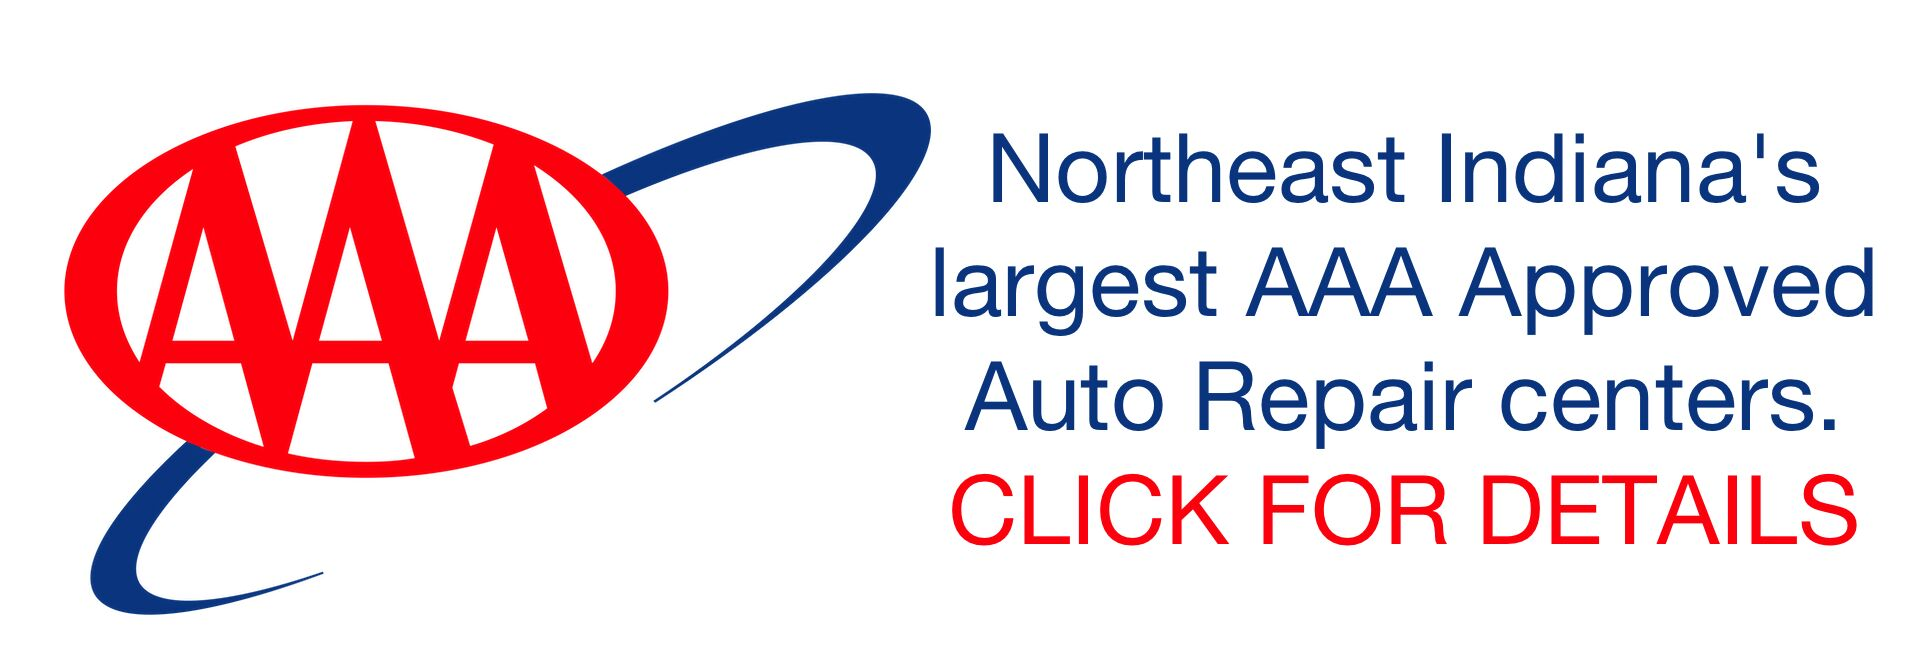 AAA Approved Auto Repair Shops